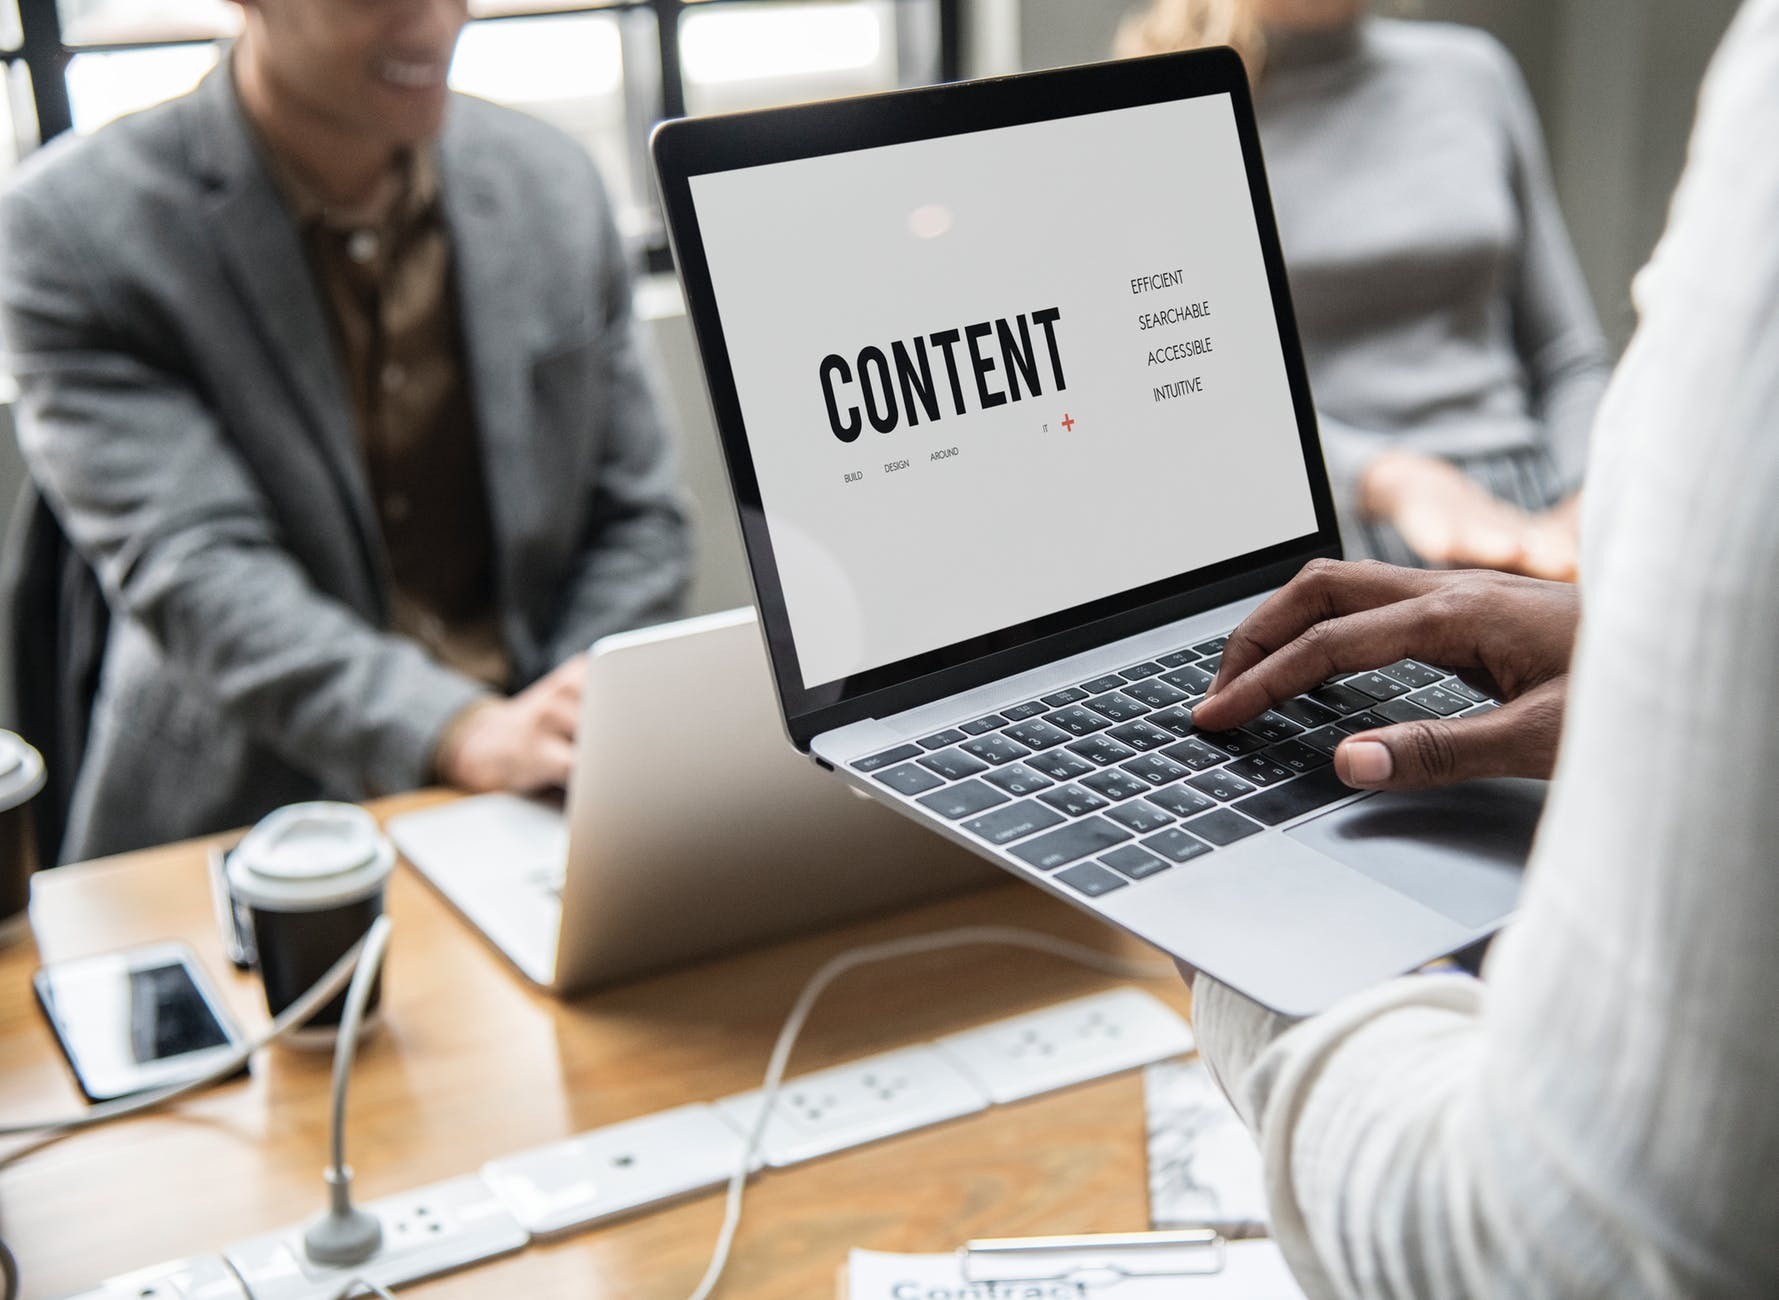 Content strategy and SEO strategy must go hand in hand to bolster your marketing efforts